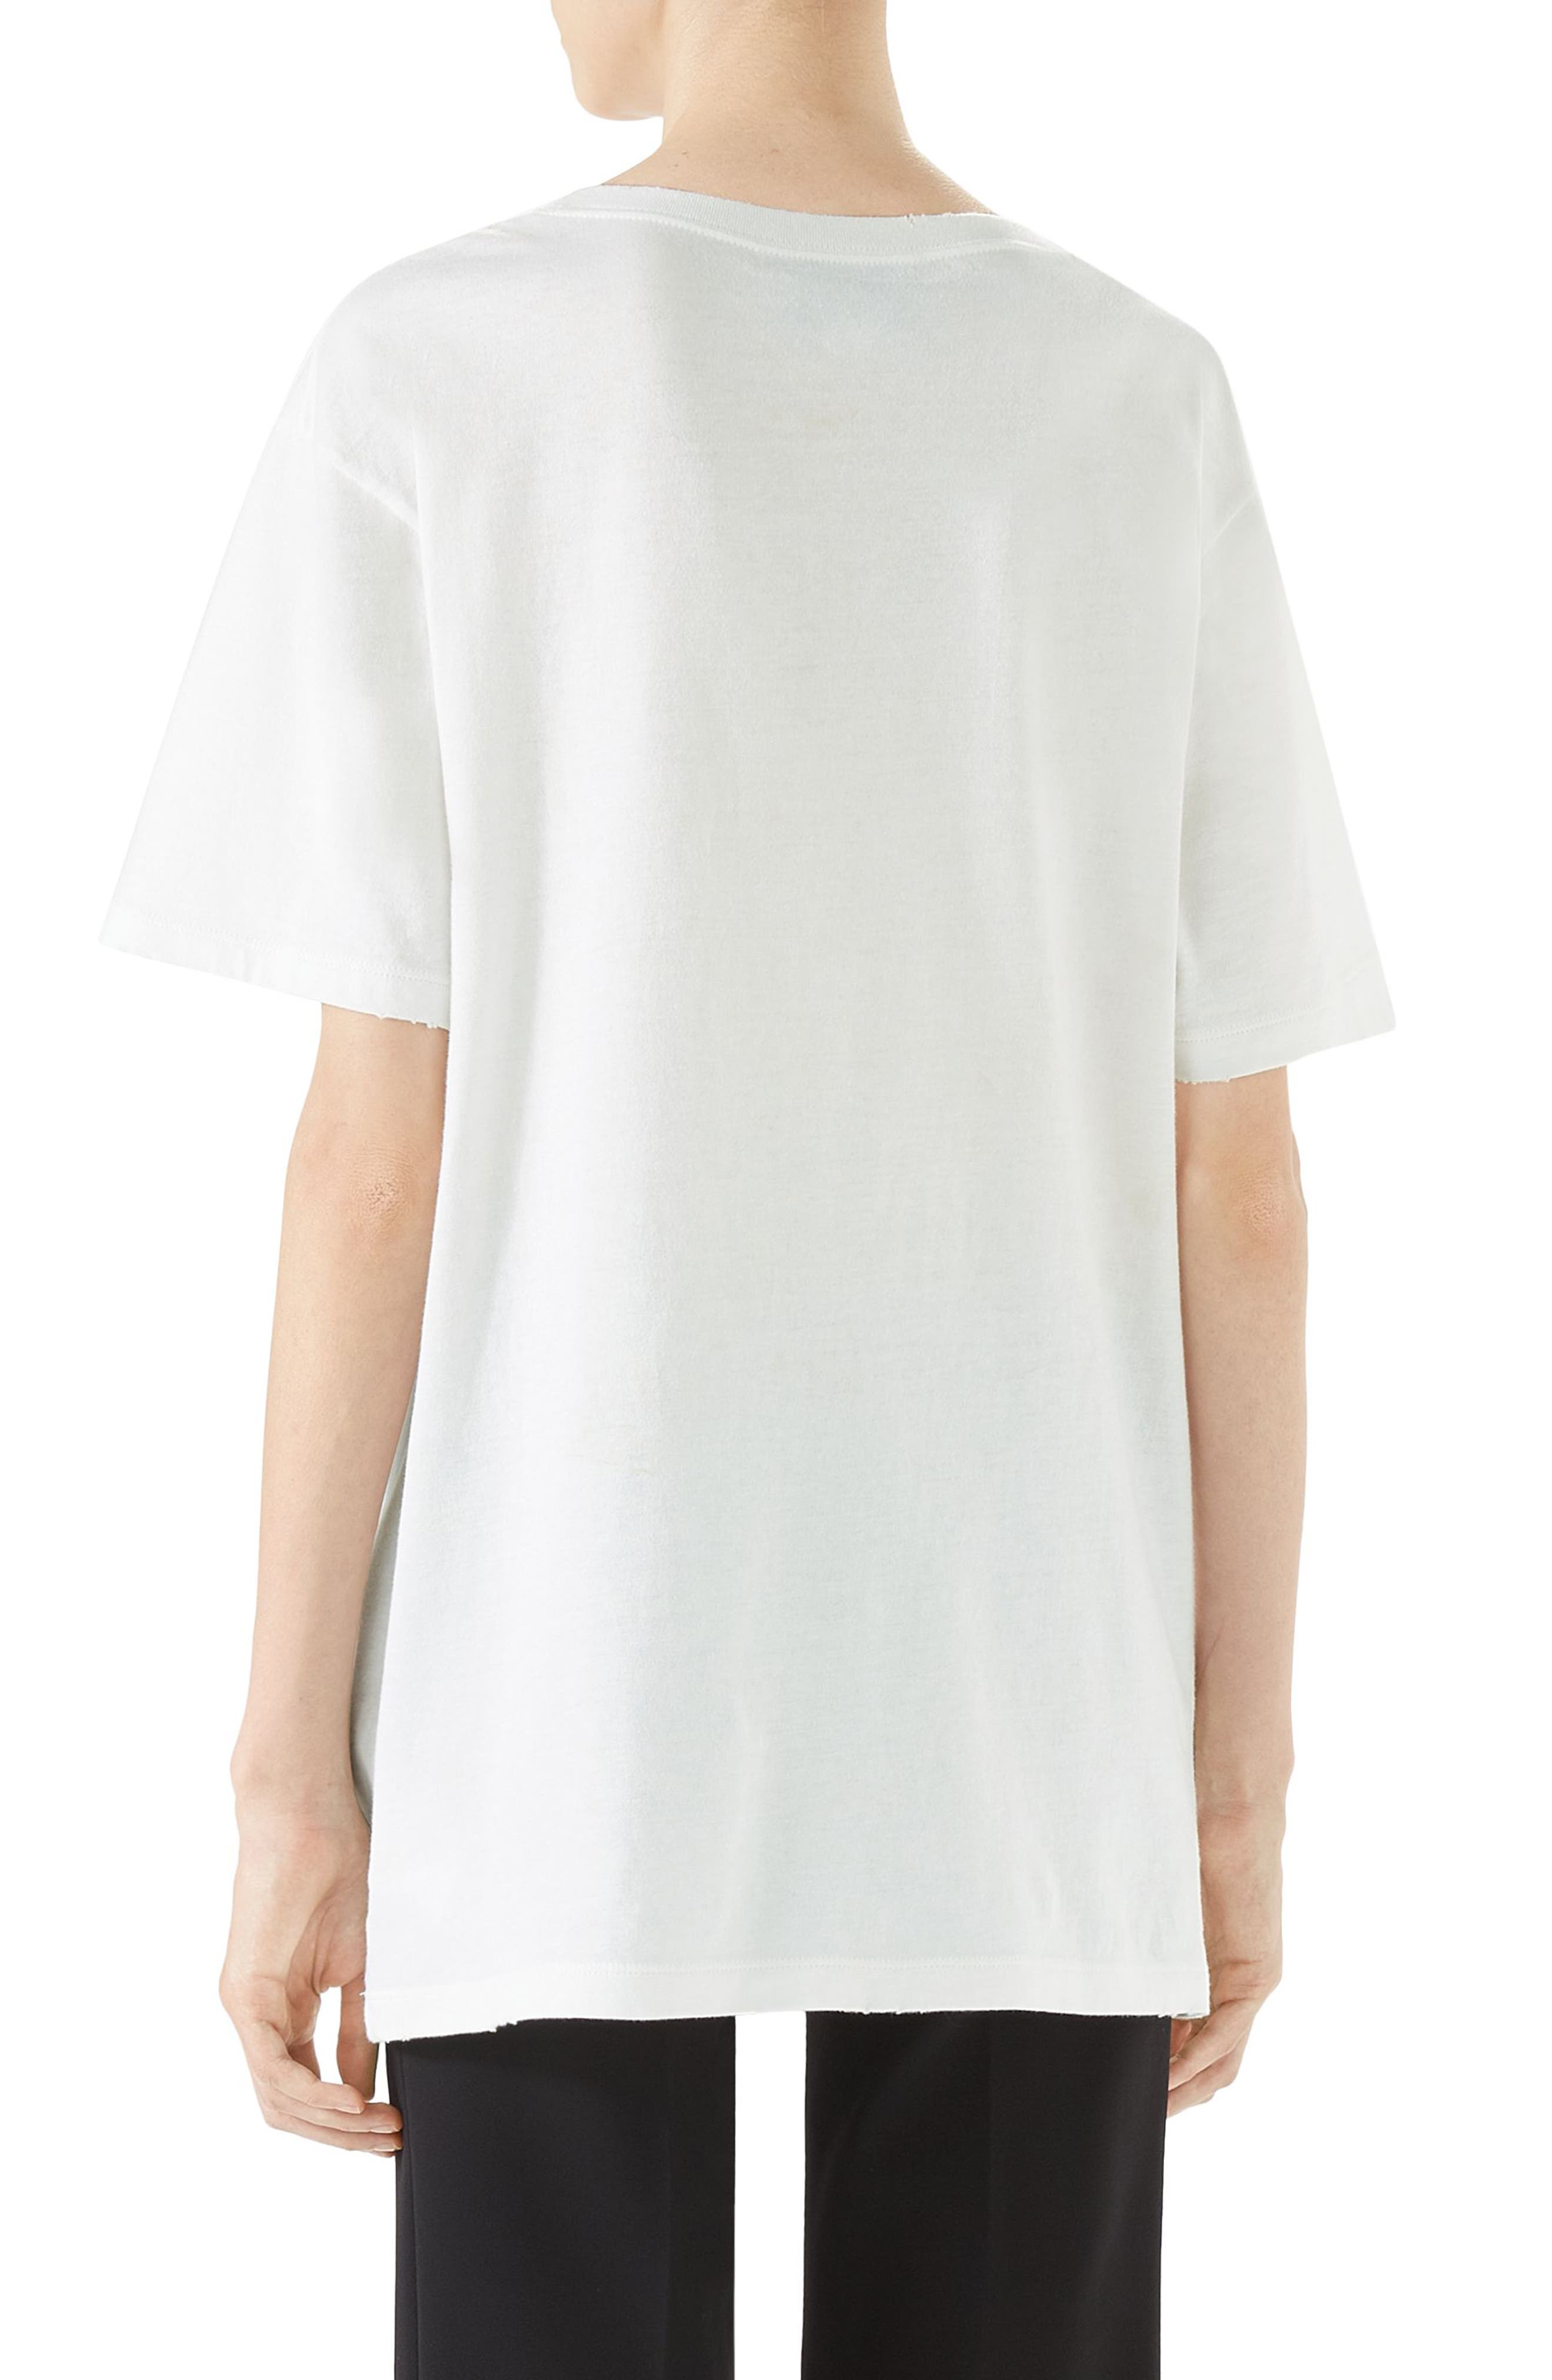 Guccify Snake Print Tee,                             Alternate thumbnail 2, color,                             Ivory